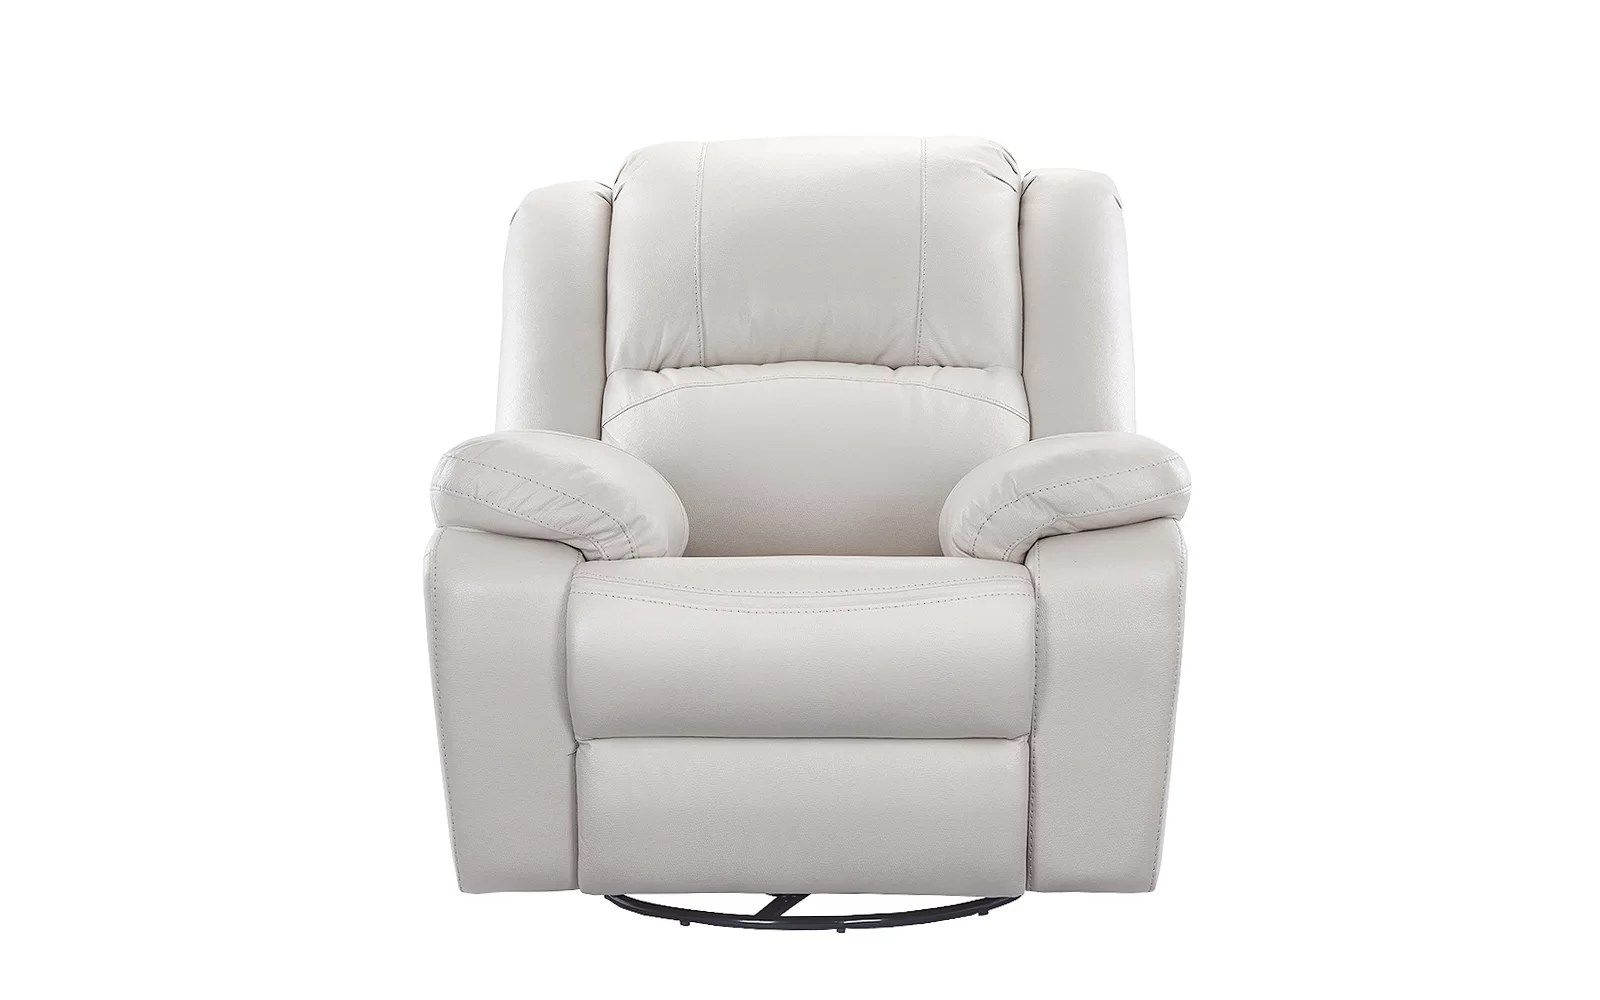 Swivel Rocker Recliner Chair Henry Manual Swivel Rocker Recliner